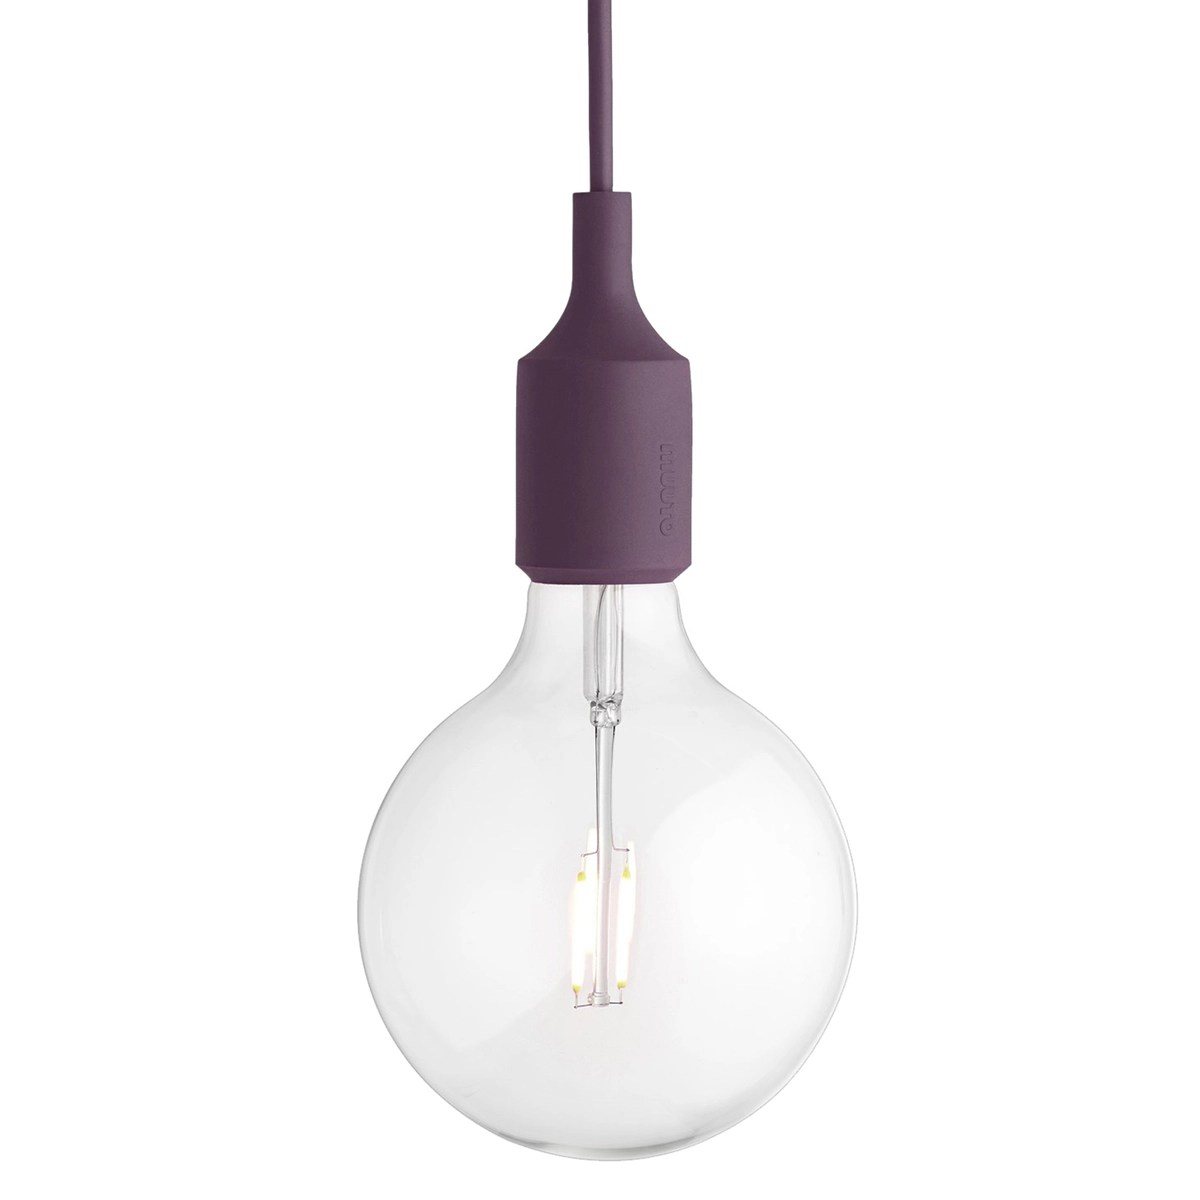 E27 Sockel E27 Led Socket Lamp Burgundy